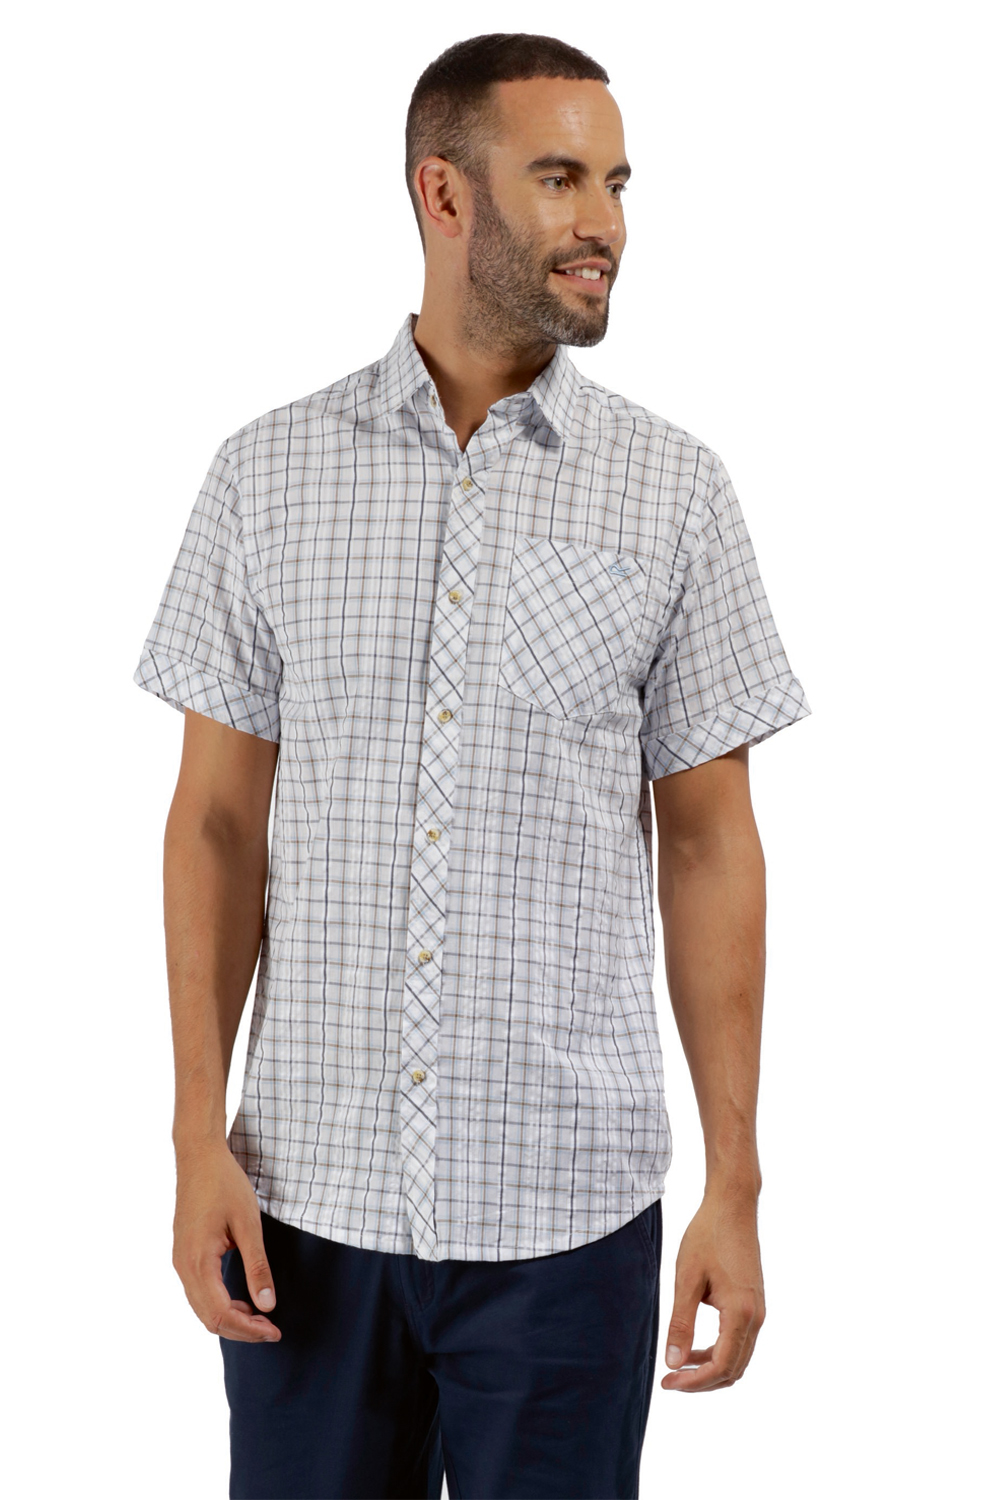 Regatta-Mens-Deakin-II-Coolweave-Cotton-Short-Sleeved-Summer-Check-Shirt-RRP-50 thumbnail 21